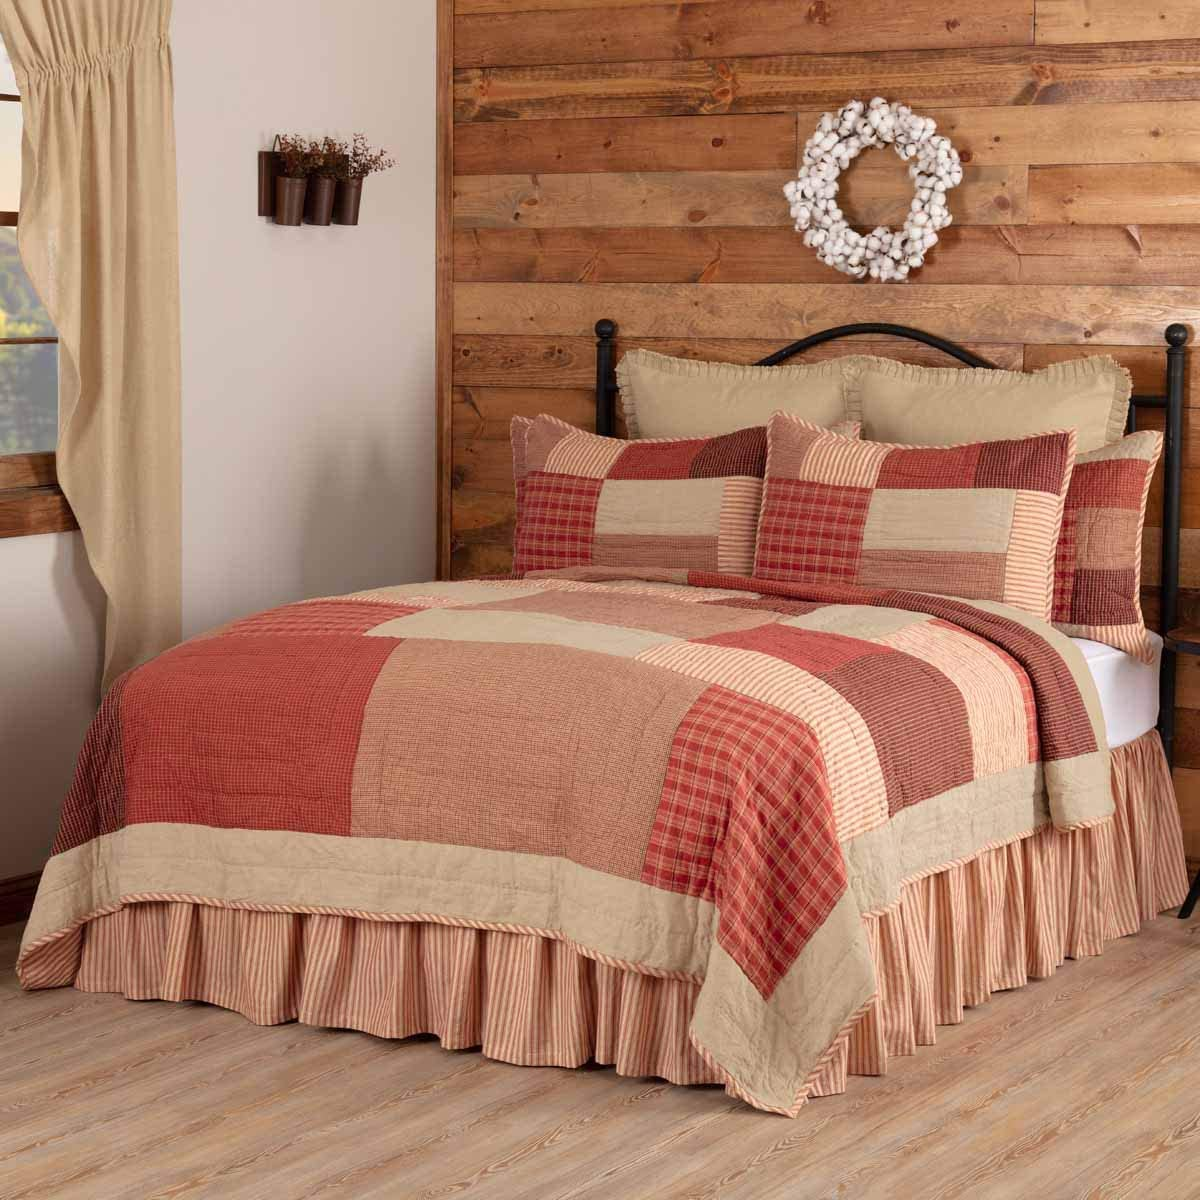 VHC Brands Rory Schoolhouse Patchwork Farmhouse Cotton Reversible Ticking Stripe Bedroom Quilt